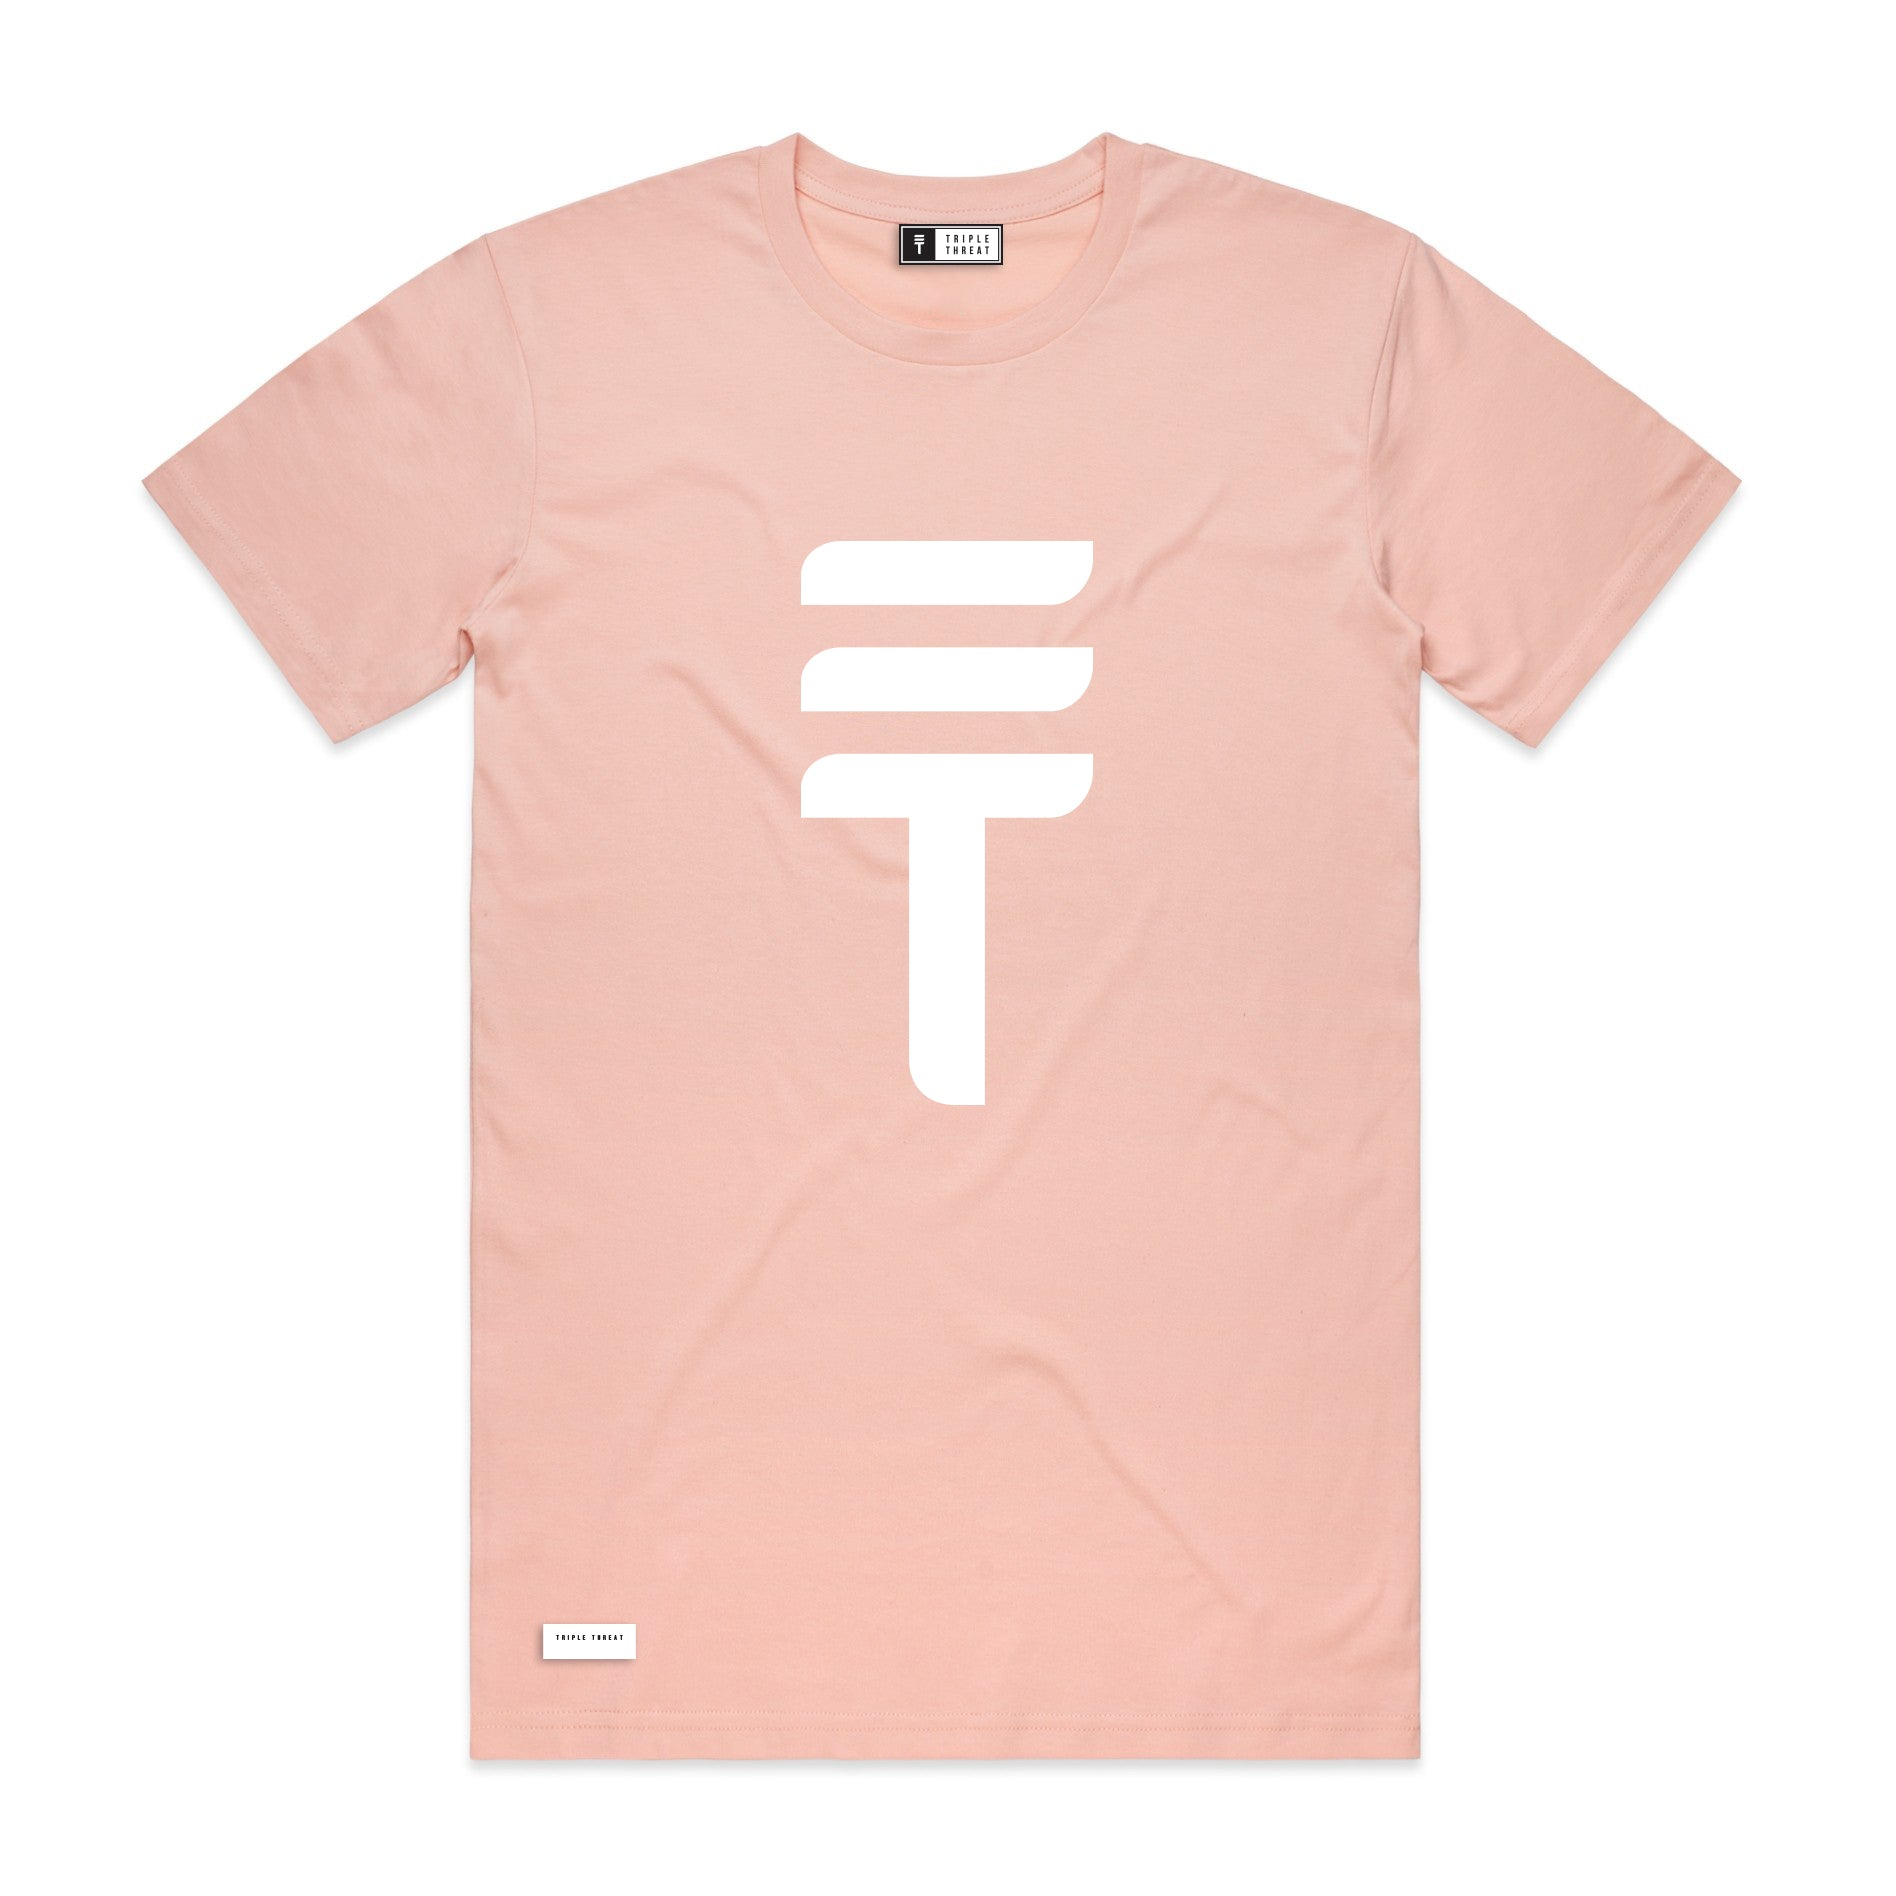 BIG LOGO T-SHIRT - PALE PINK